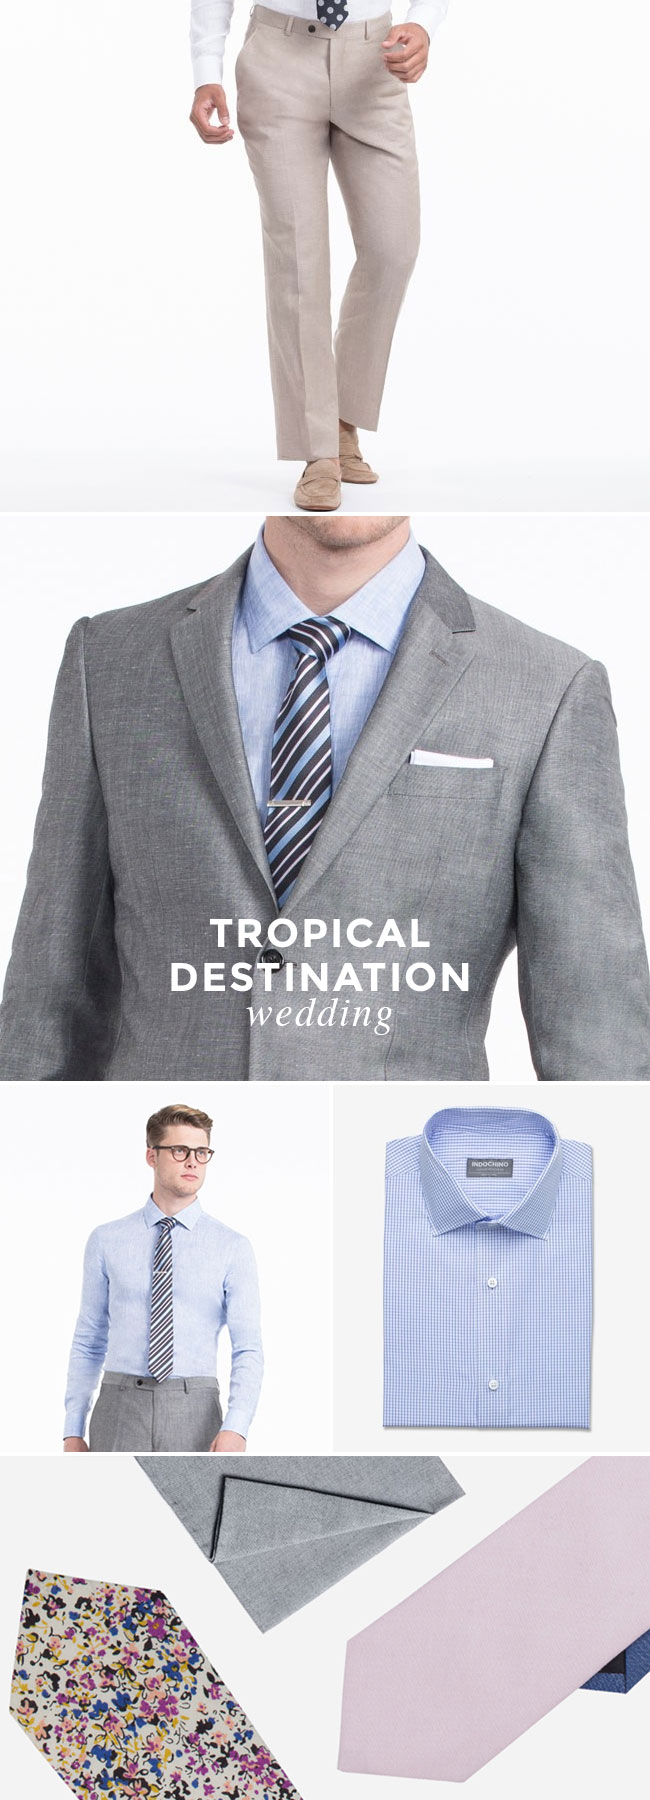 What to Wear to A Wedding - Guy Edition - Tropical Destination Wedding